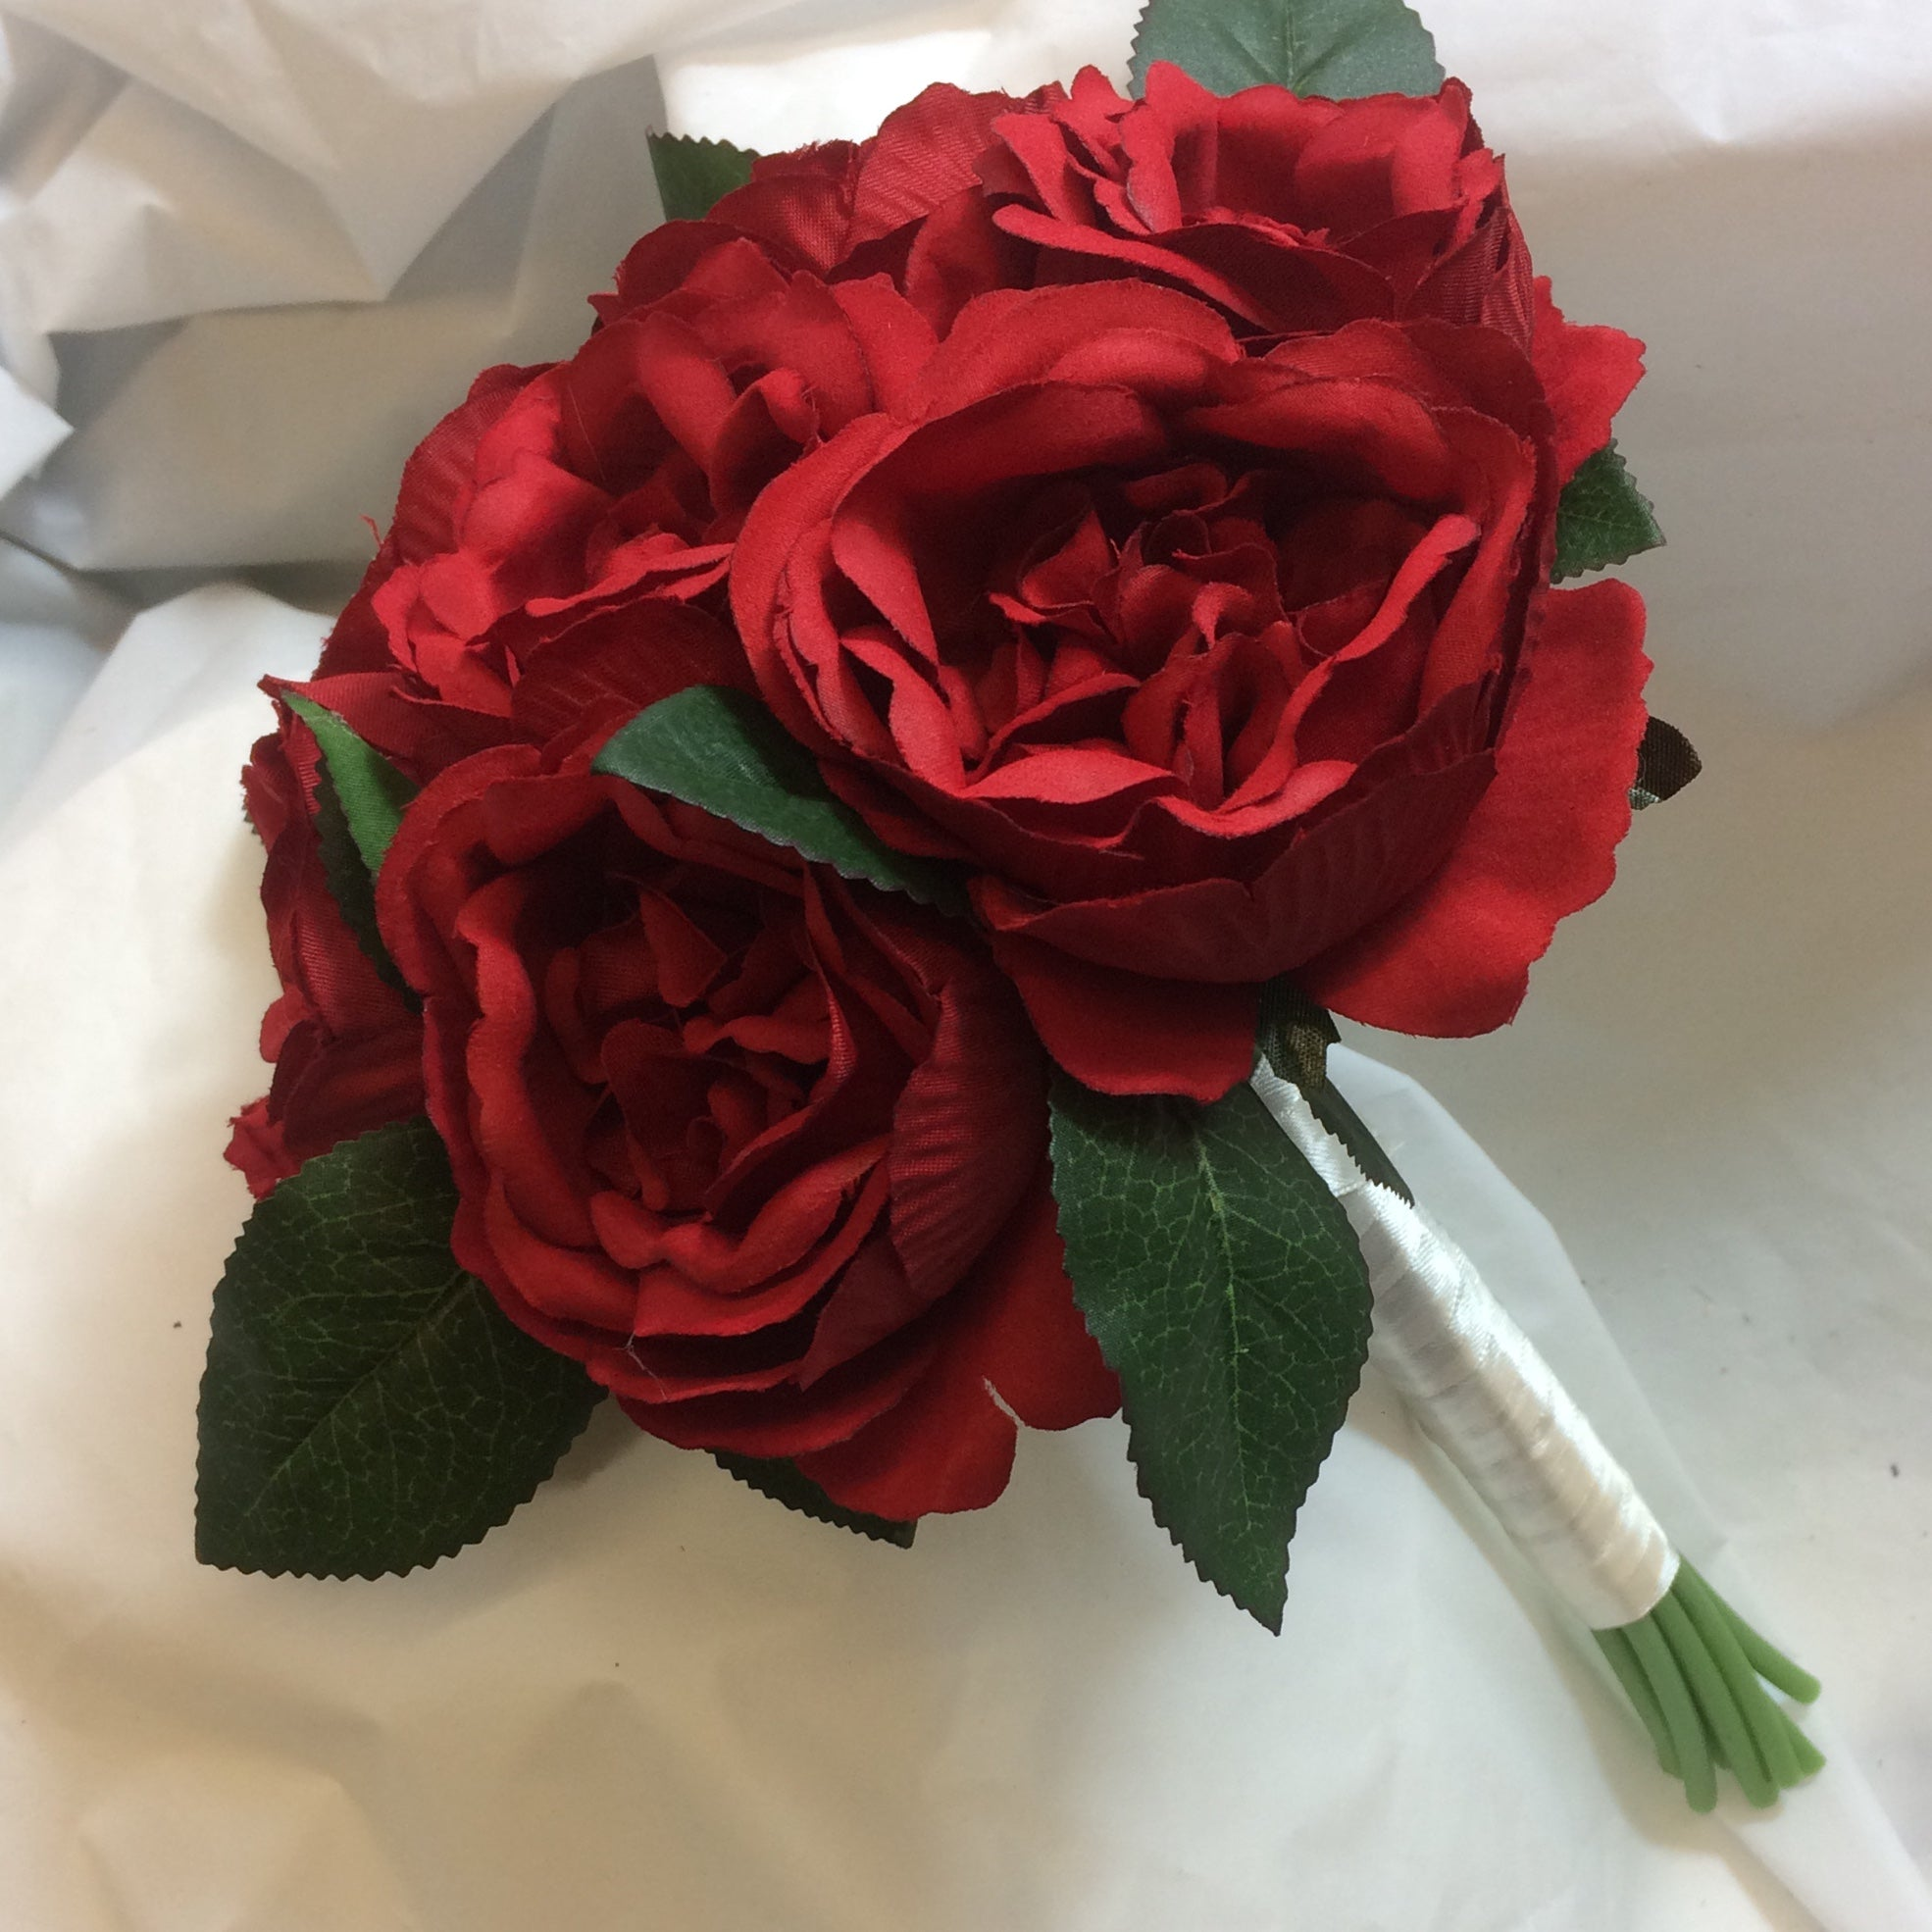 A Brides Bouquet Featuring Artificial David Austin Red Silk Roses Abigailrose